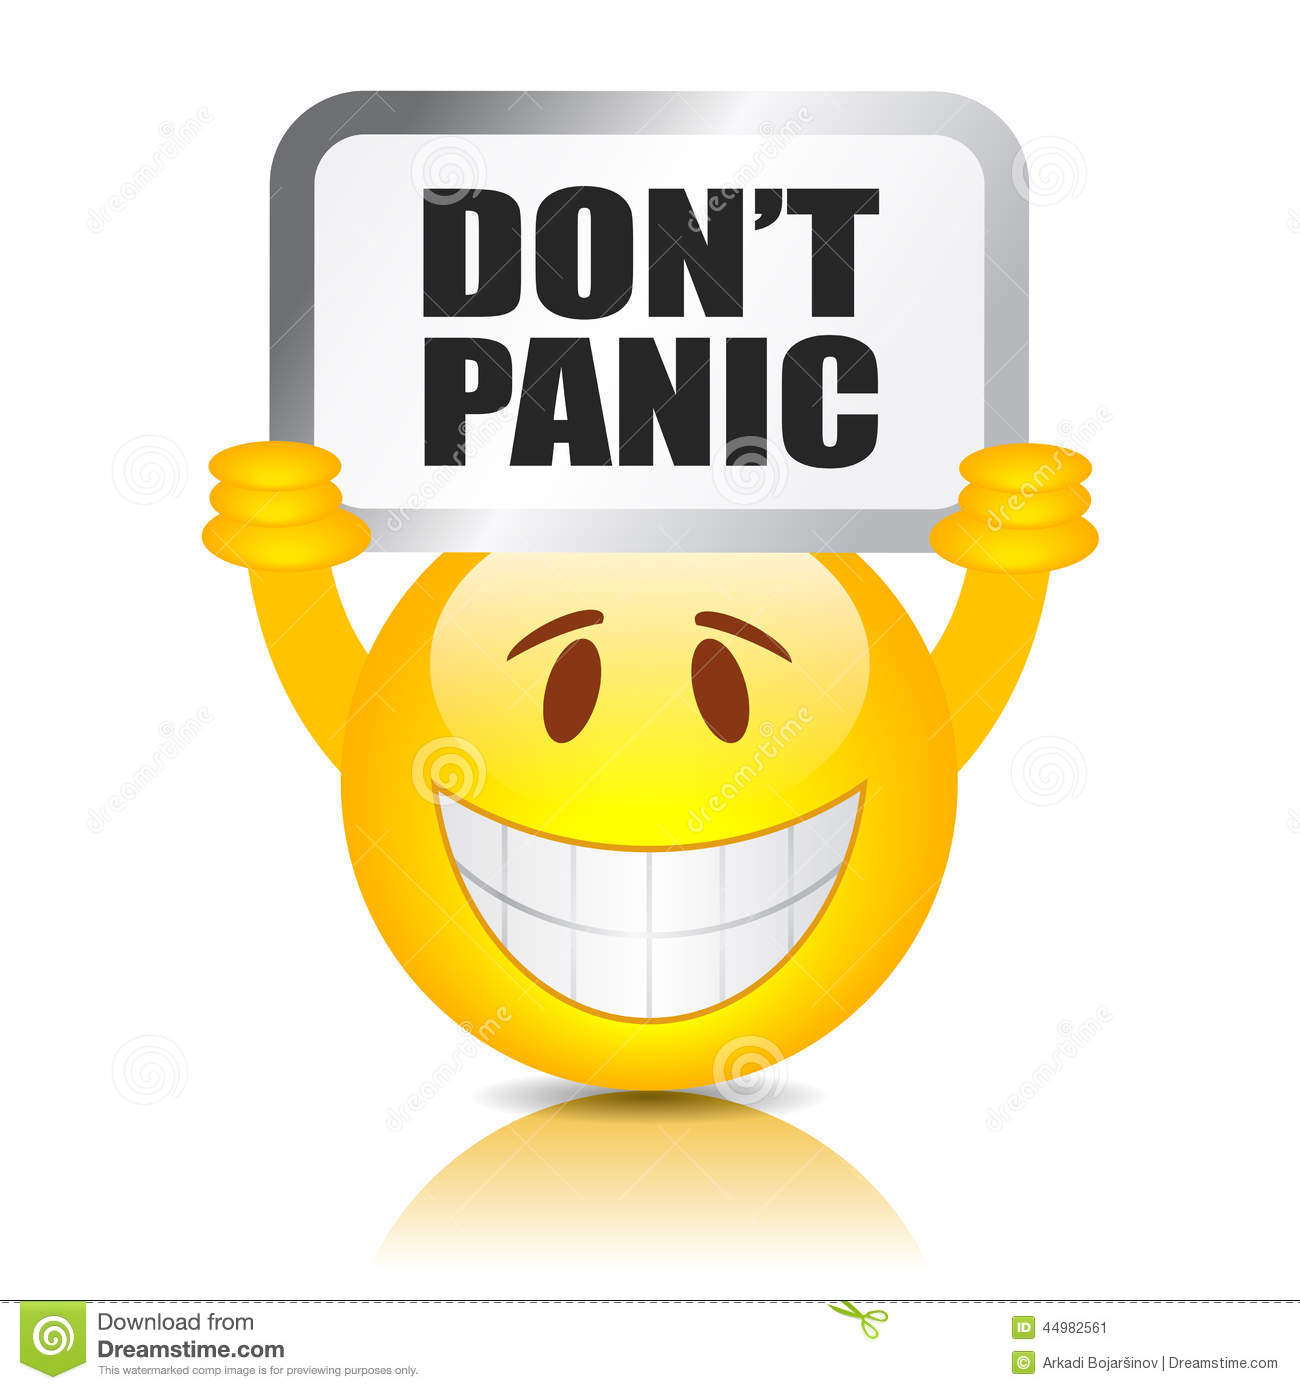 don-t-panic-sign-white-background-44982561.jpg